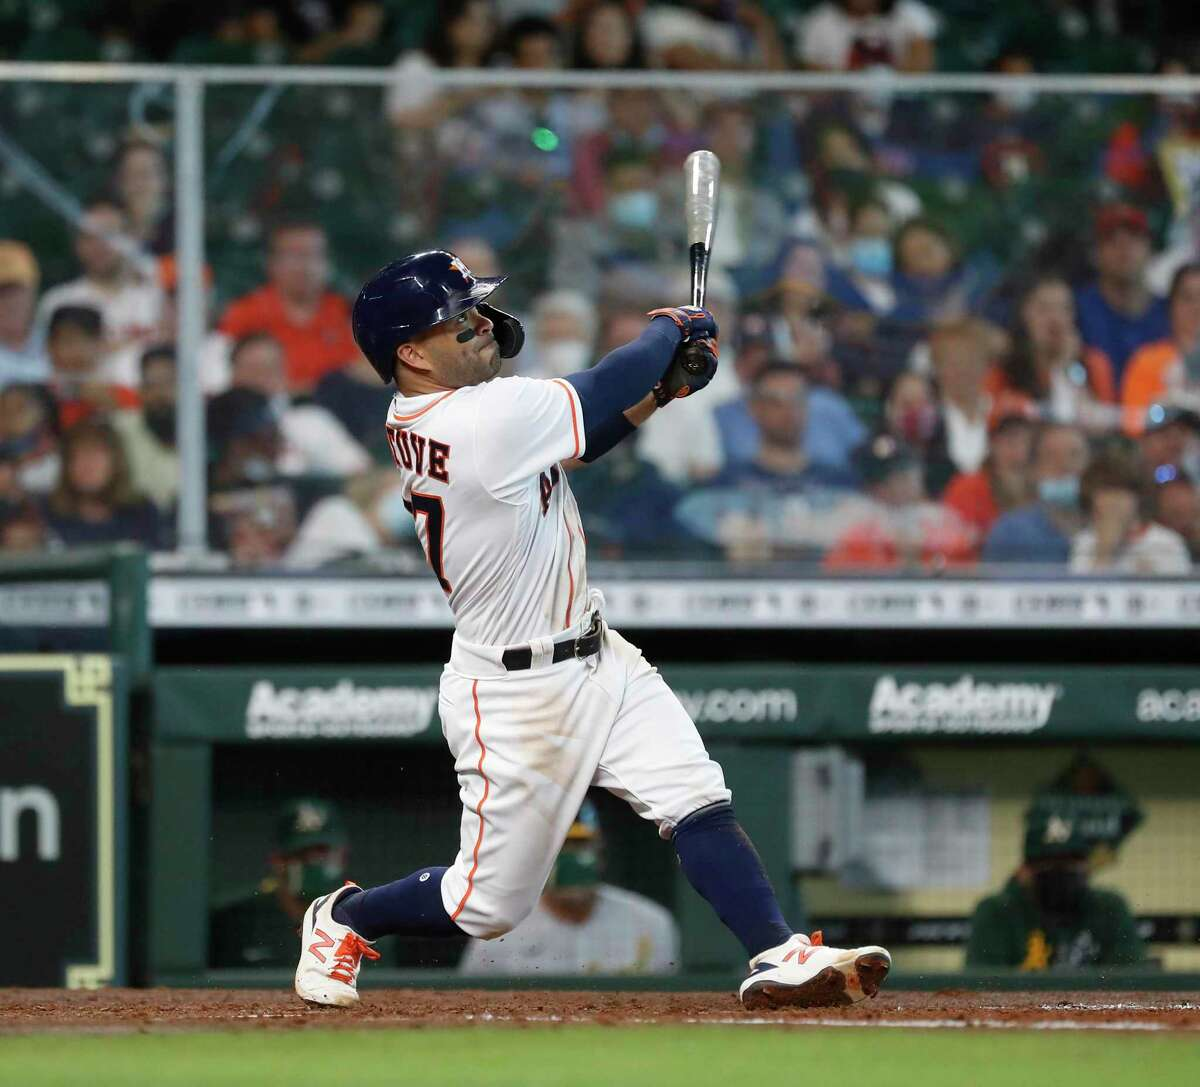 Ten days into the baseball season, leadoff hitter Jose Altuve is hitting .351 for the Astros, while former leadoff hitter George Springer has yet to play a game for the Blue Jays because of injuries.